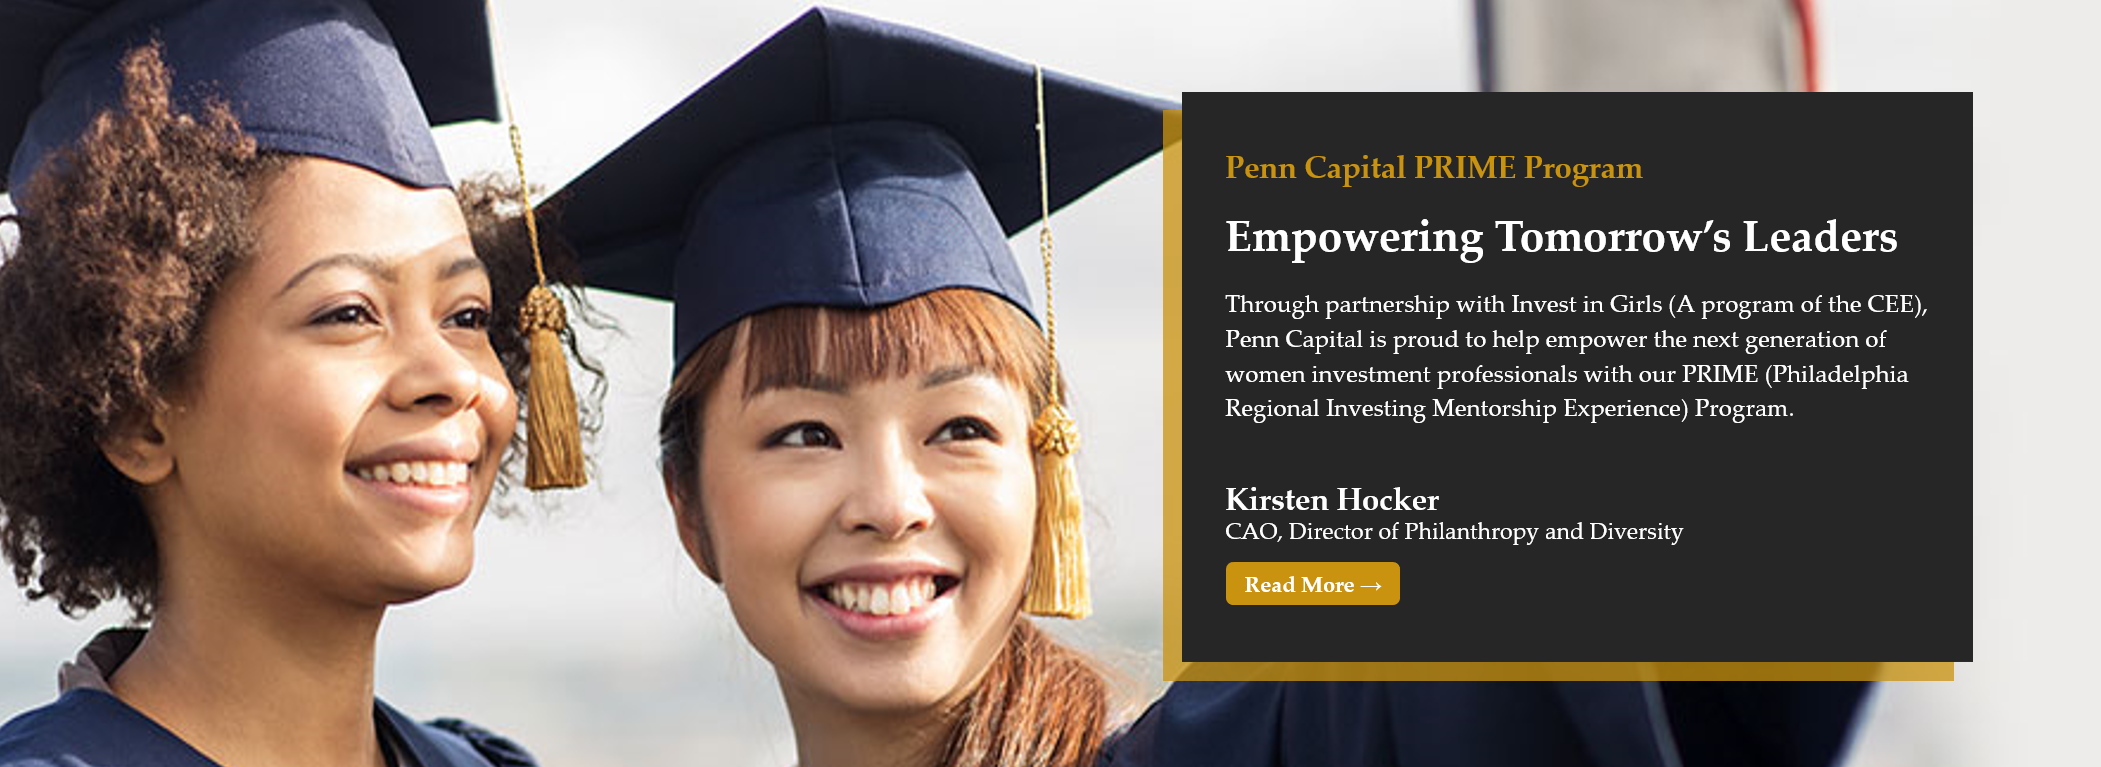 Penn Capital and Invest in Girls: PRIME Program